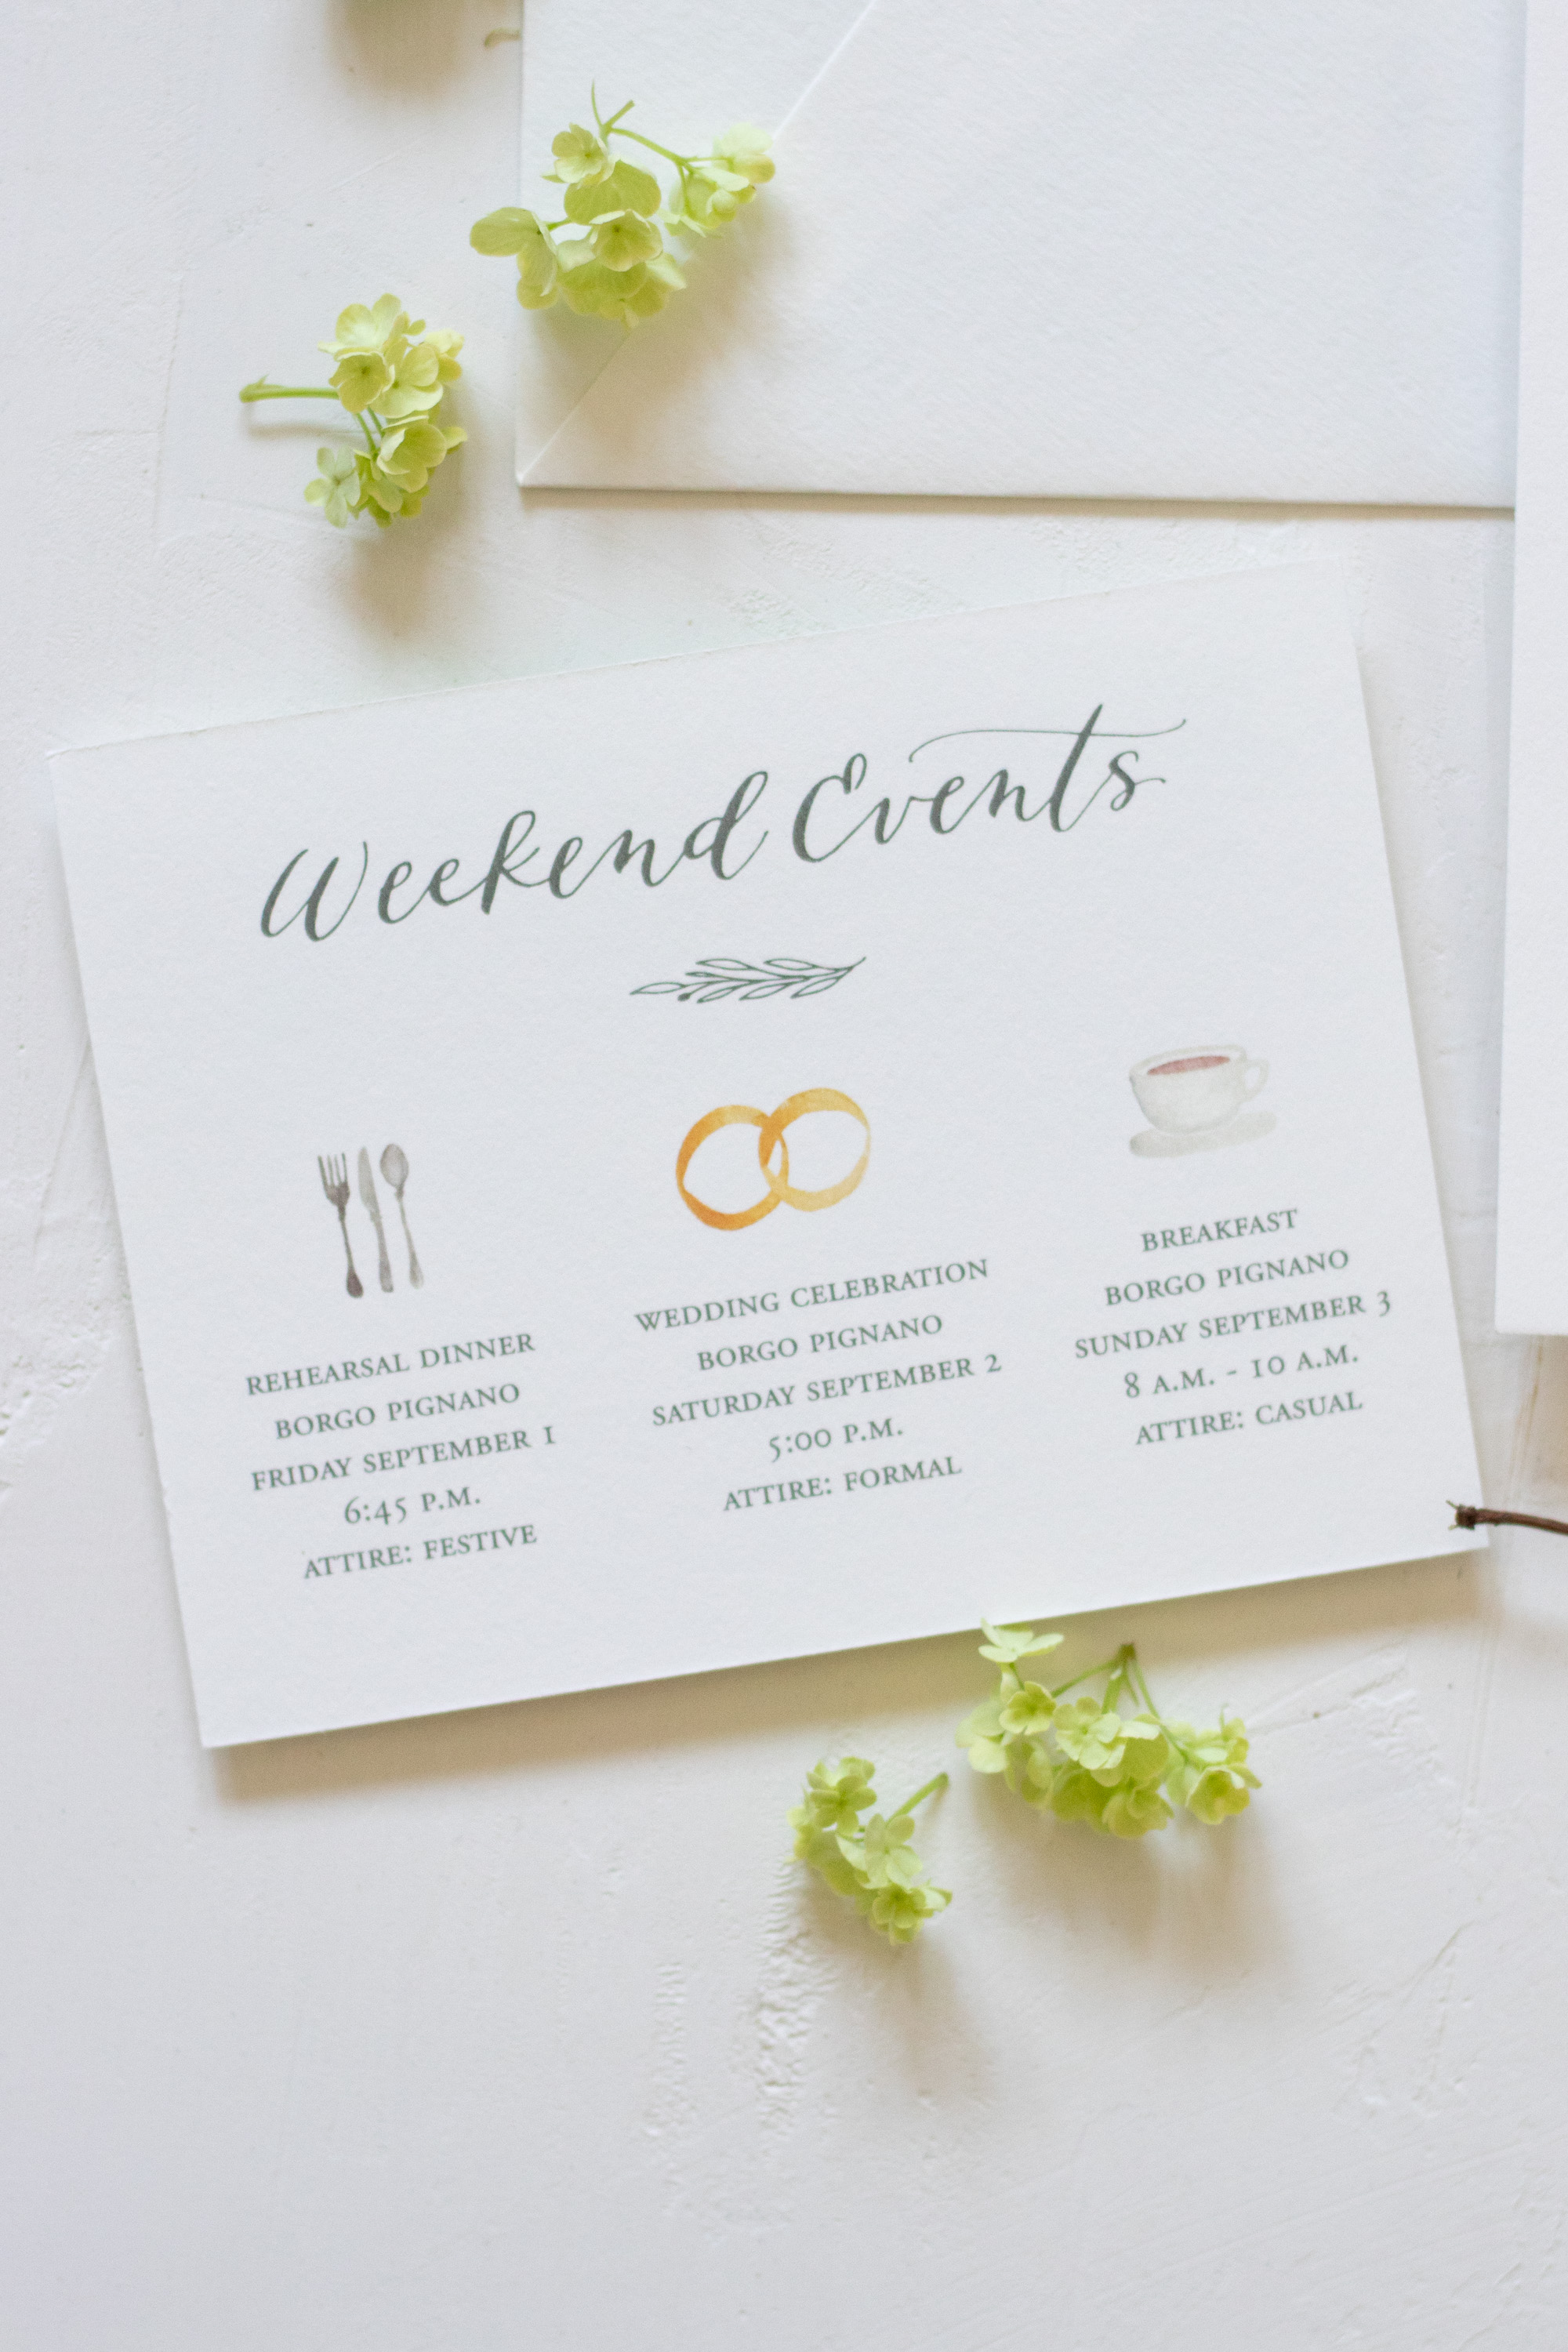 Weekend Events Card with Watercolor Illustrations